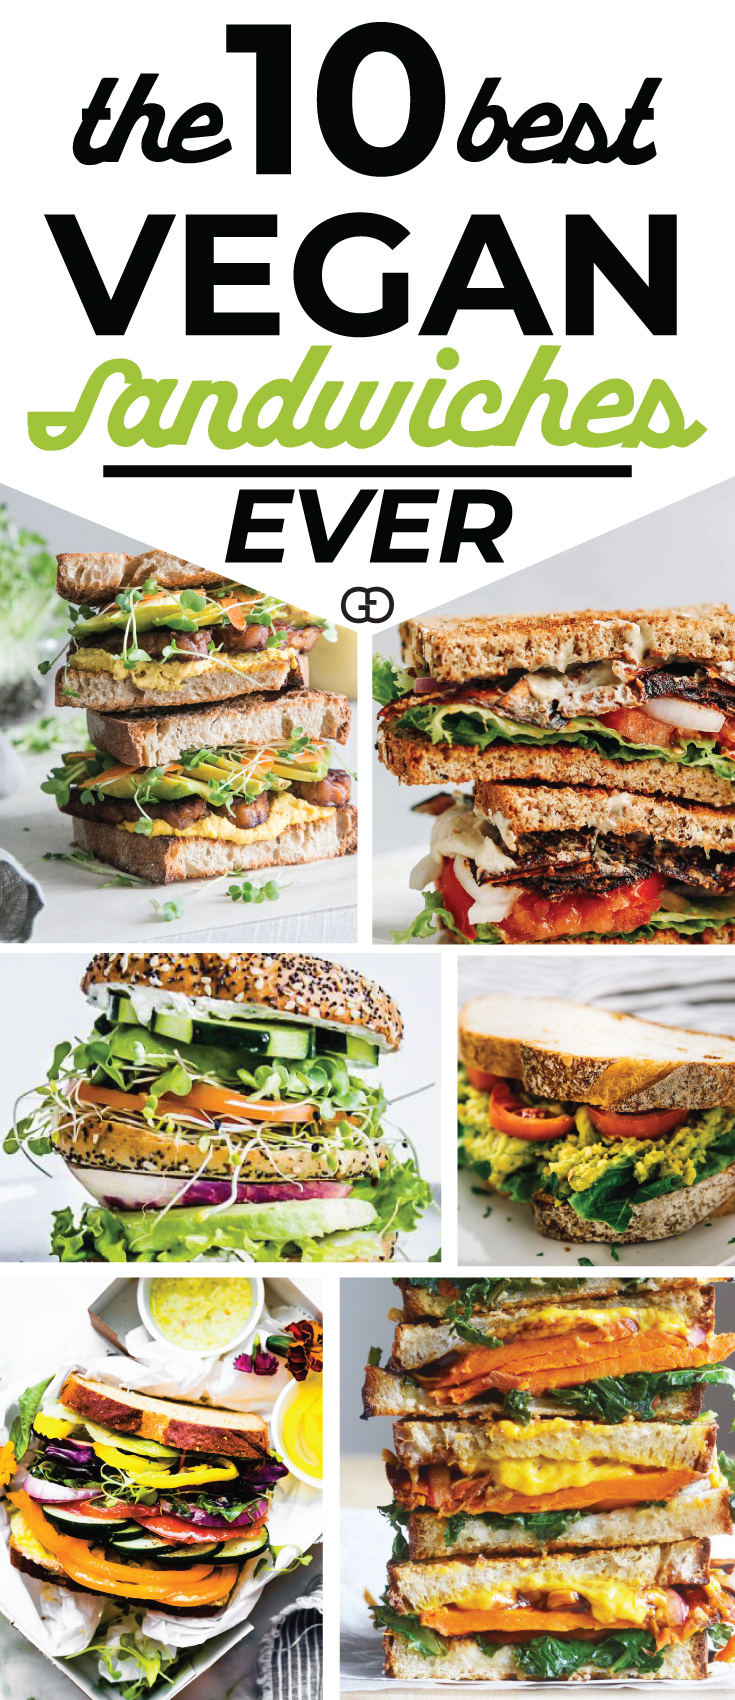 Best vegan sandwich ideas EVER! Healthy, delicious, and easy to make! Yummy! Meat eaters will love these too! #mealprep #vegan #lunchideas #lunchboxideas #vegetarian #sandwichrecipe #healthyrecipes